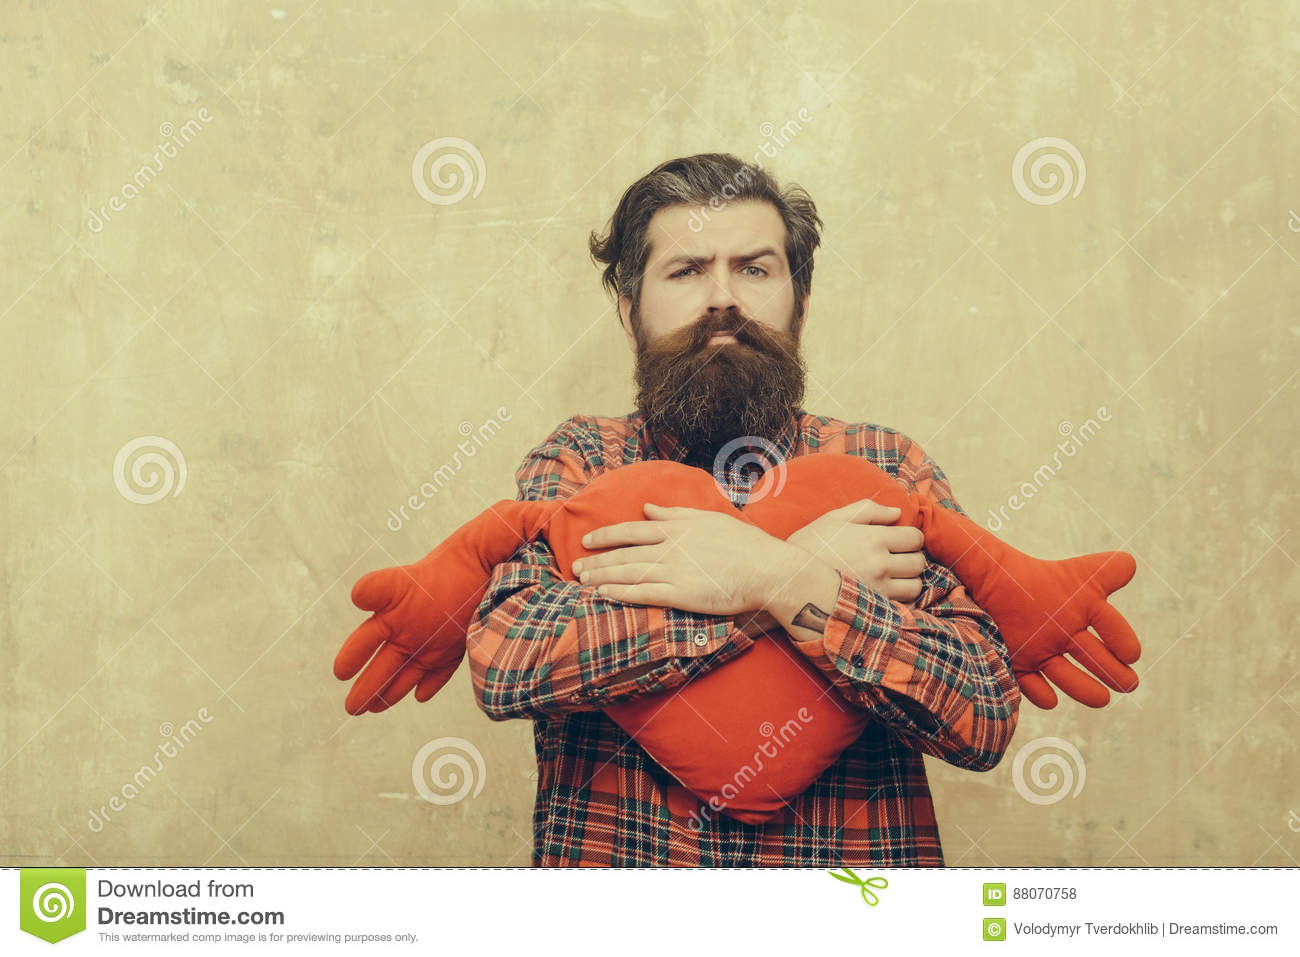 Sad bearded man hugging red heart shape toy with hands